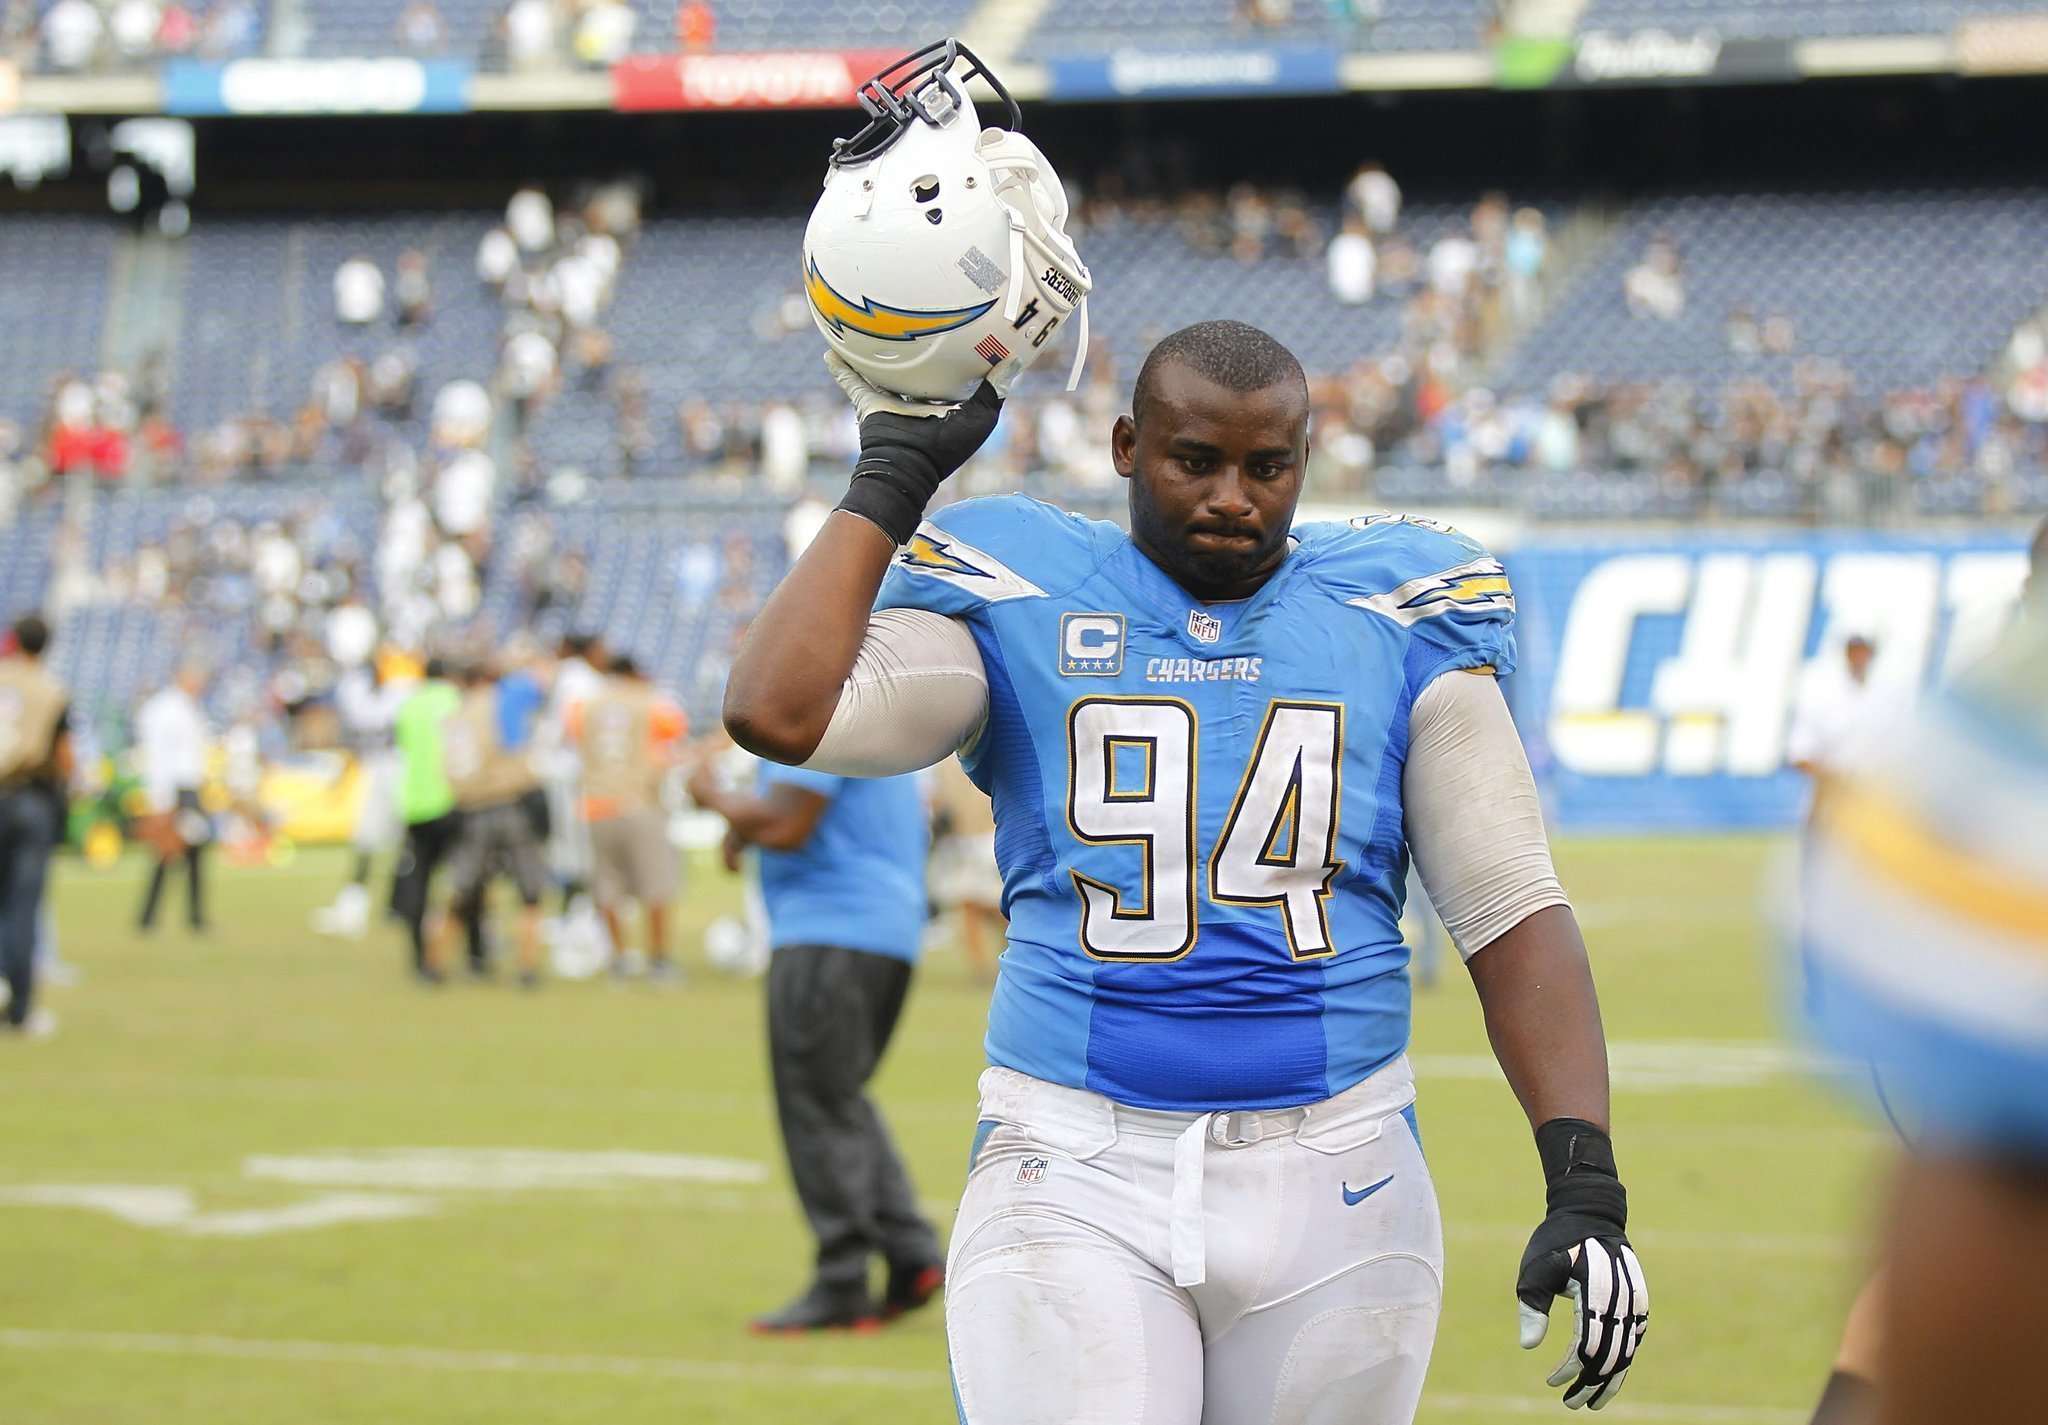 Ailing Chargers submit final injury report The San Diego Union